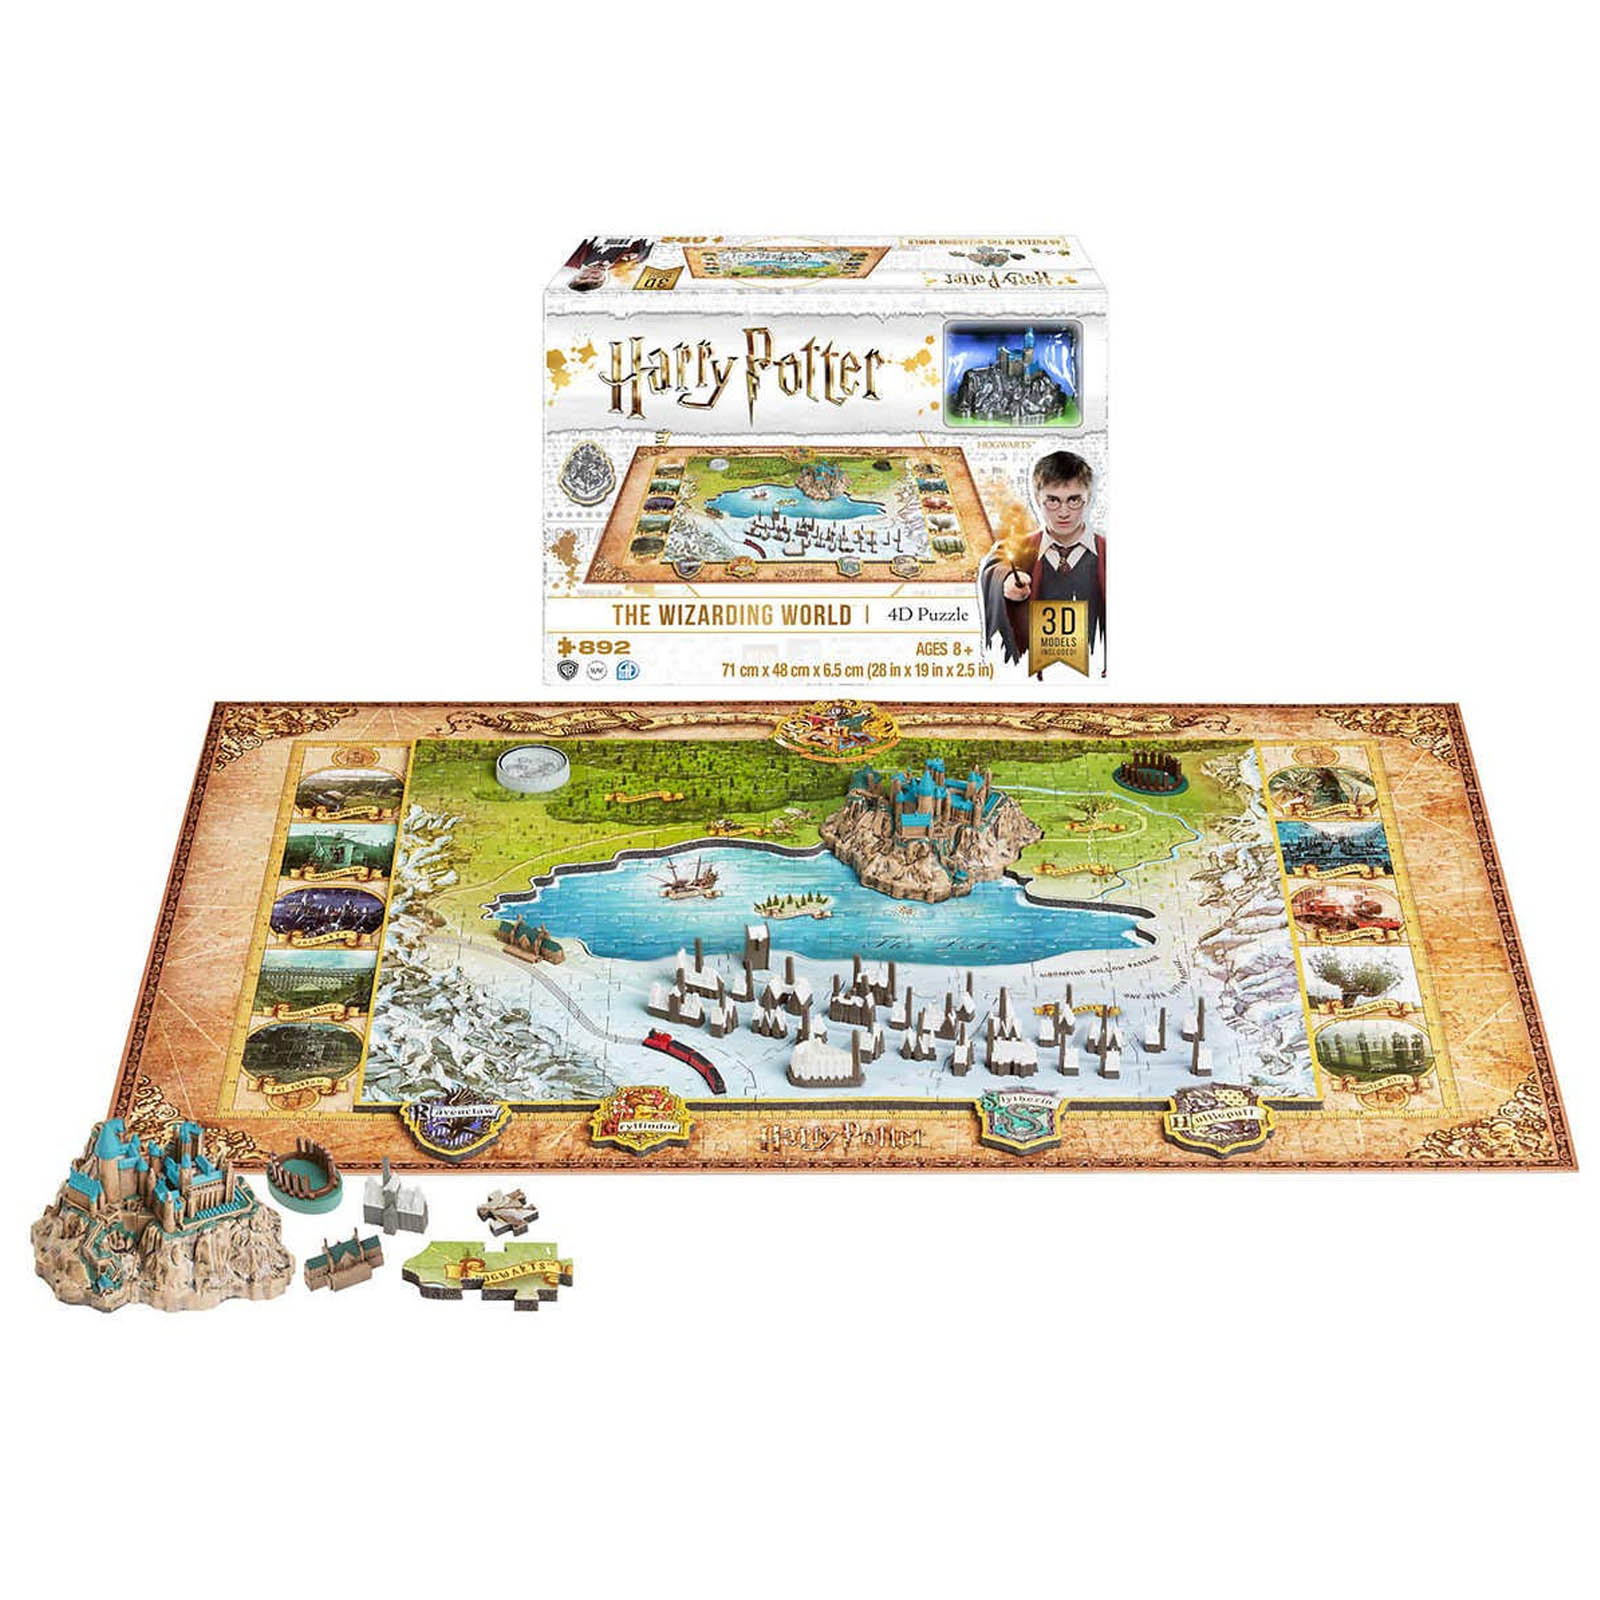 Harry Potter The Wizarding World 892 Piece 4D Cityscape Puzzle